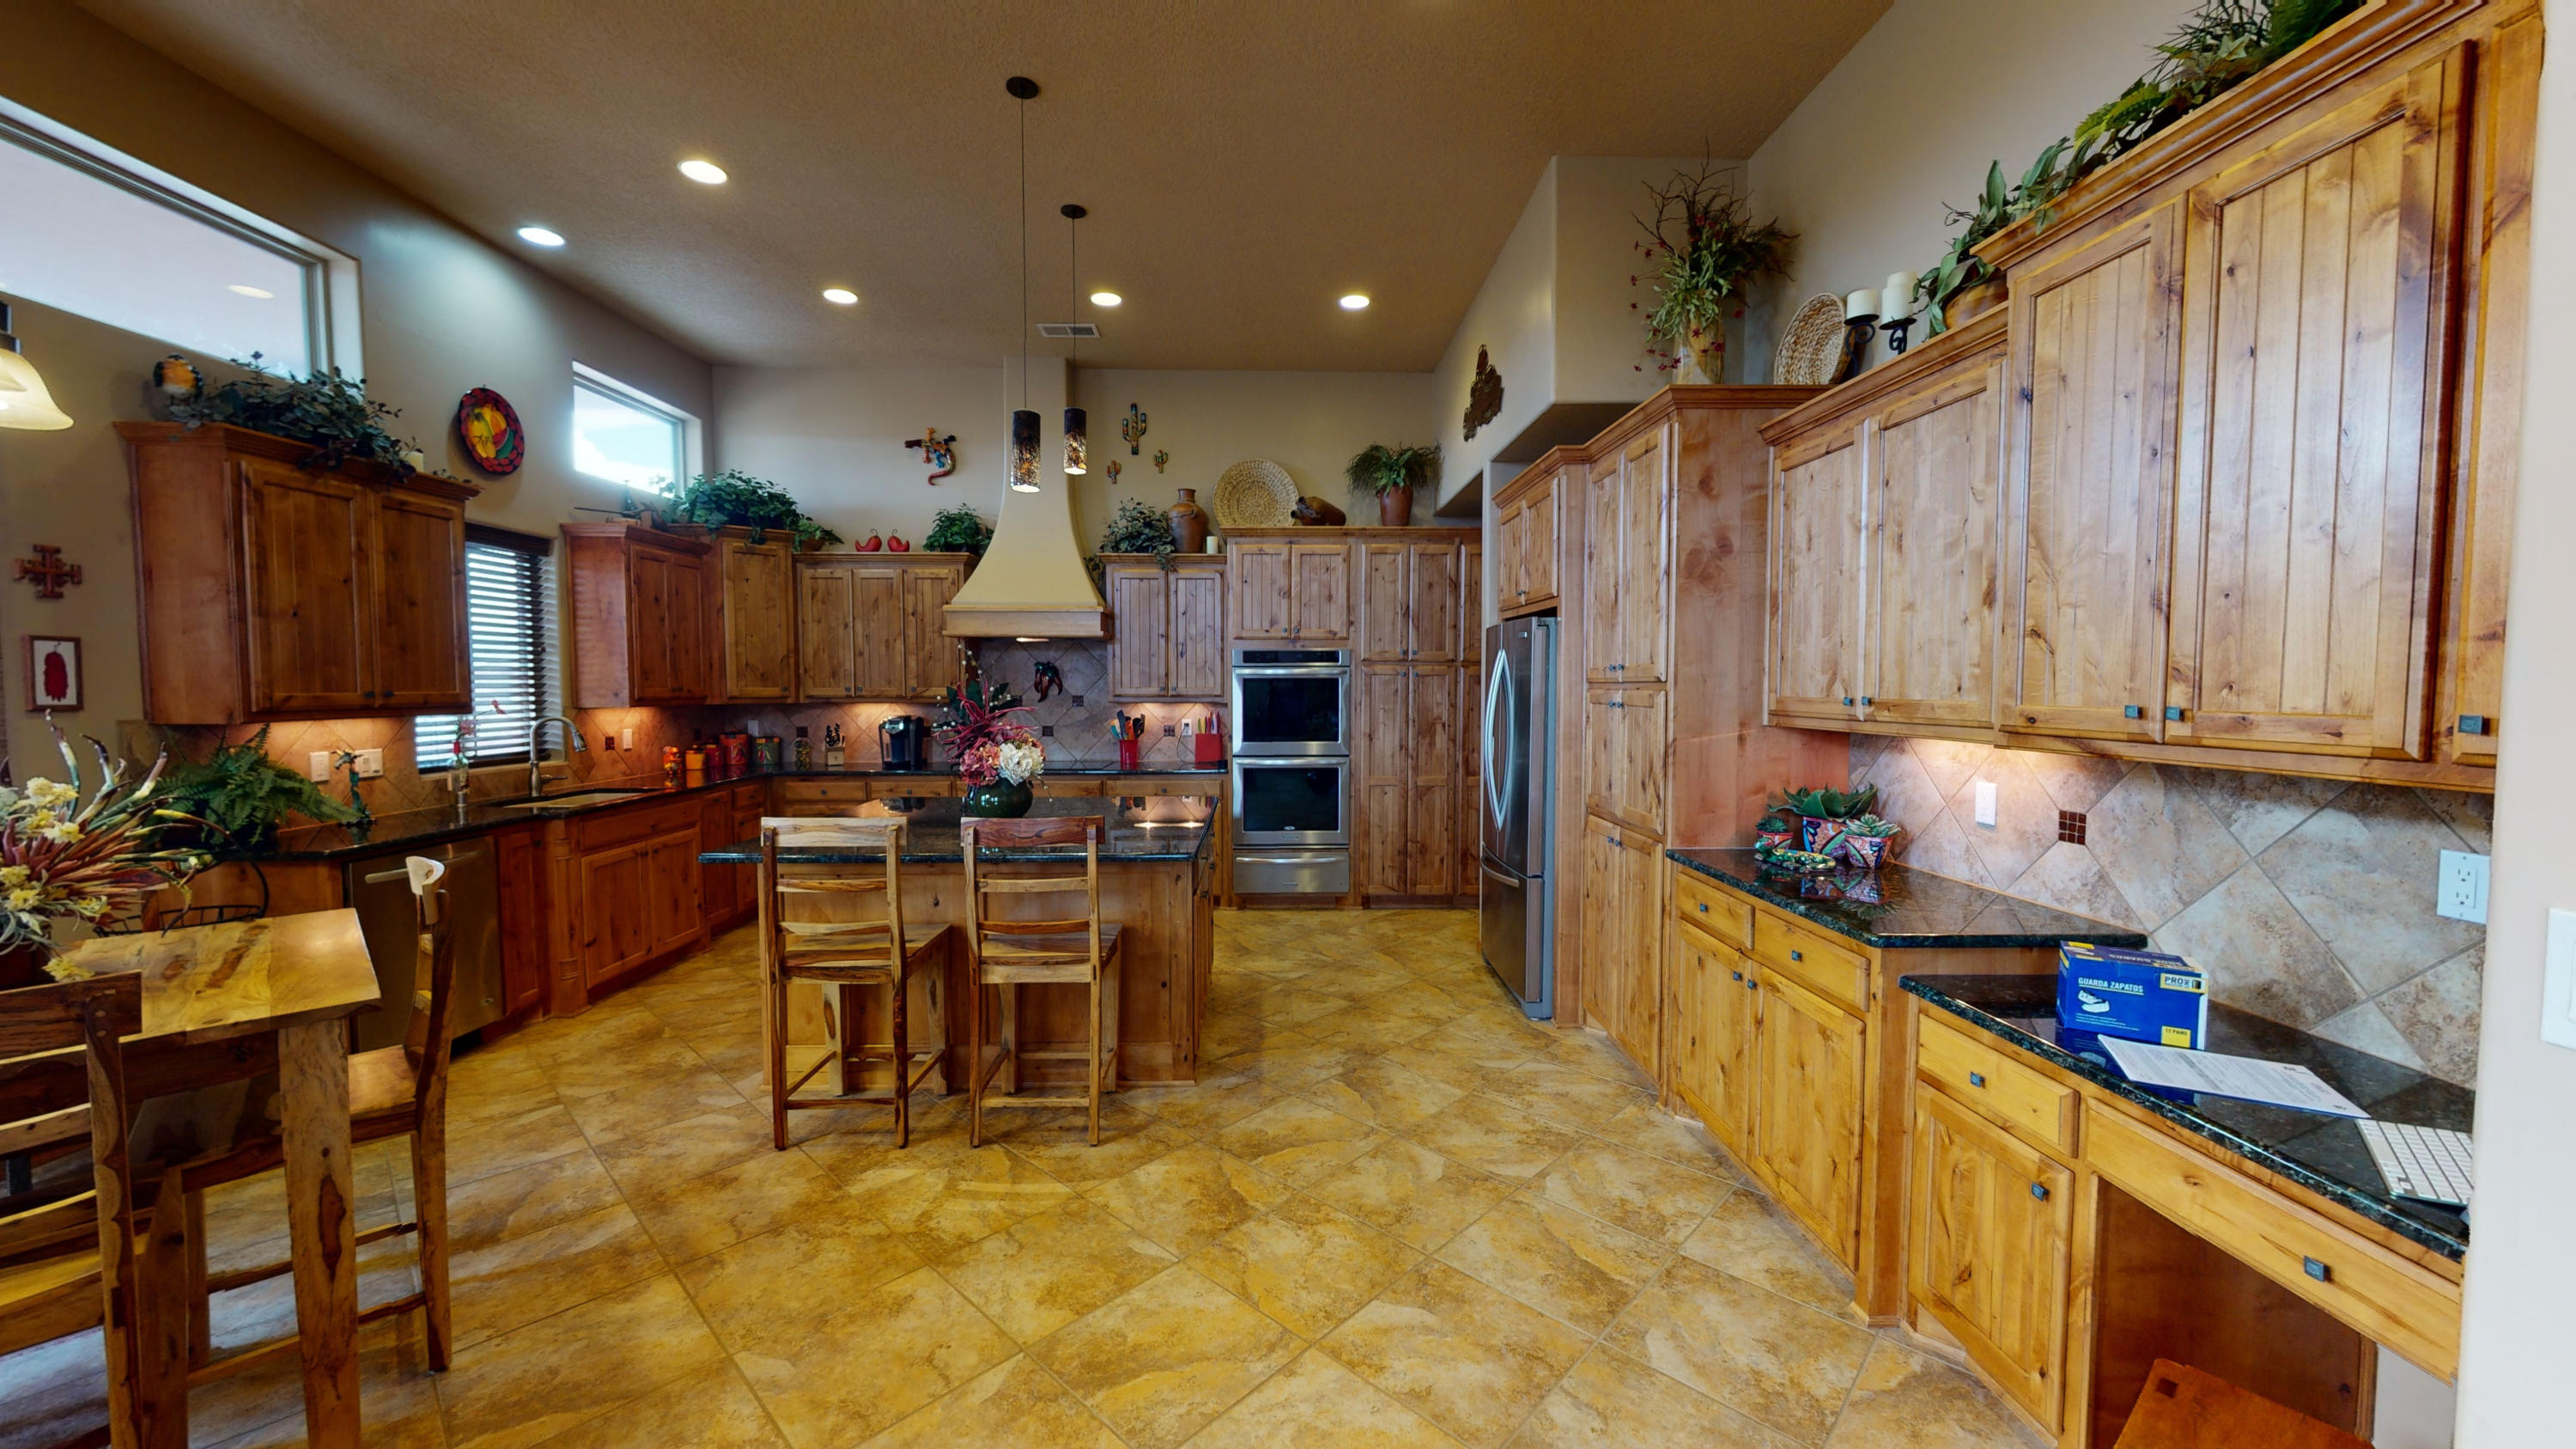 Extremely hard to find exquisite property in the heart of Rio Rancho.  ZERO spared on all int and ext upgrades and amenities... too much to mention, BEST chef's kitchen you have ever seen, that opens up to entire home.  Barely lived in 6.5 years old, majorly upgraded, that shows brand new.  Over the top indulgence amenities - then ADD forever mountain and Rio Grande Bosque views! When compared: corner private lot, views of everything, dream kitchen, MSTR suite w large walk in his/her clsts,  private view deck, 4 CAR GRG and 1000 SQFT RV GRG-FULL HOOKUPS, 2 Custom Gates and security courtyard, 2 Water Features and Extra land!  Feels and looks like BRAND NEW HOME.  Excellent... nationally ranked schools and major conveniences just minutes away.   SEE FULL FEATURE SHEET AND 3D VIDEO!